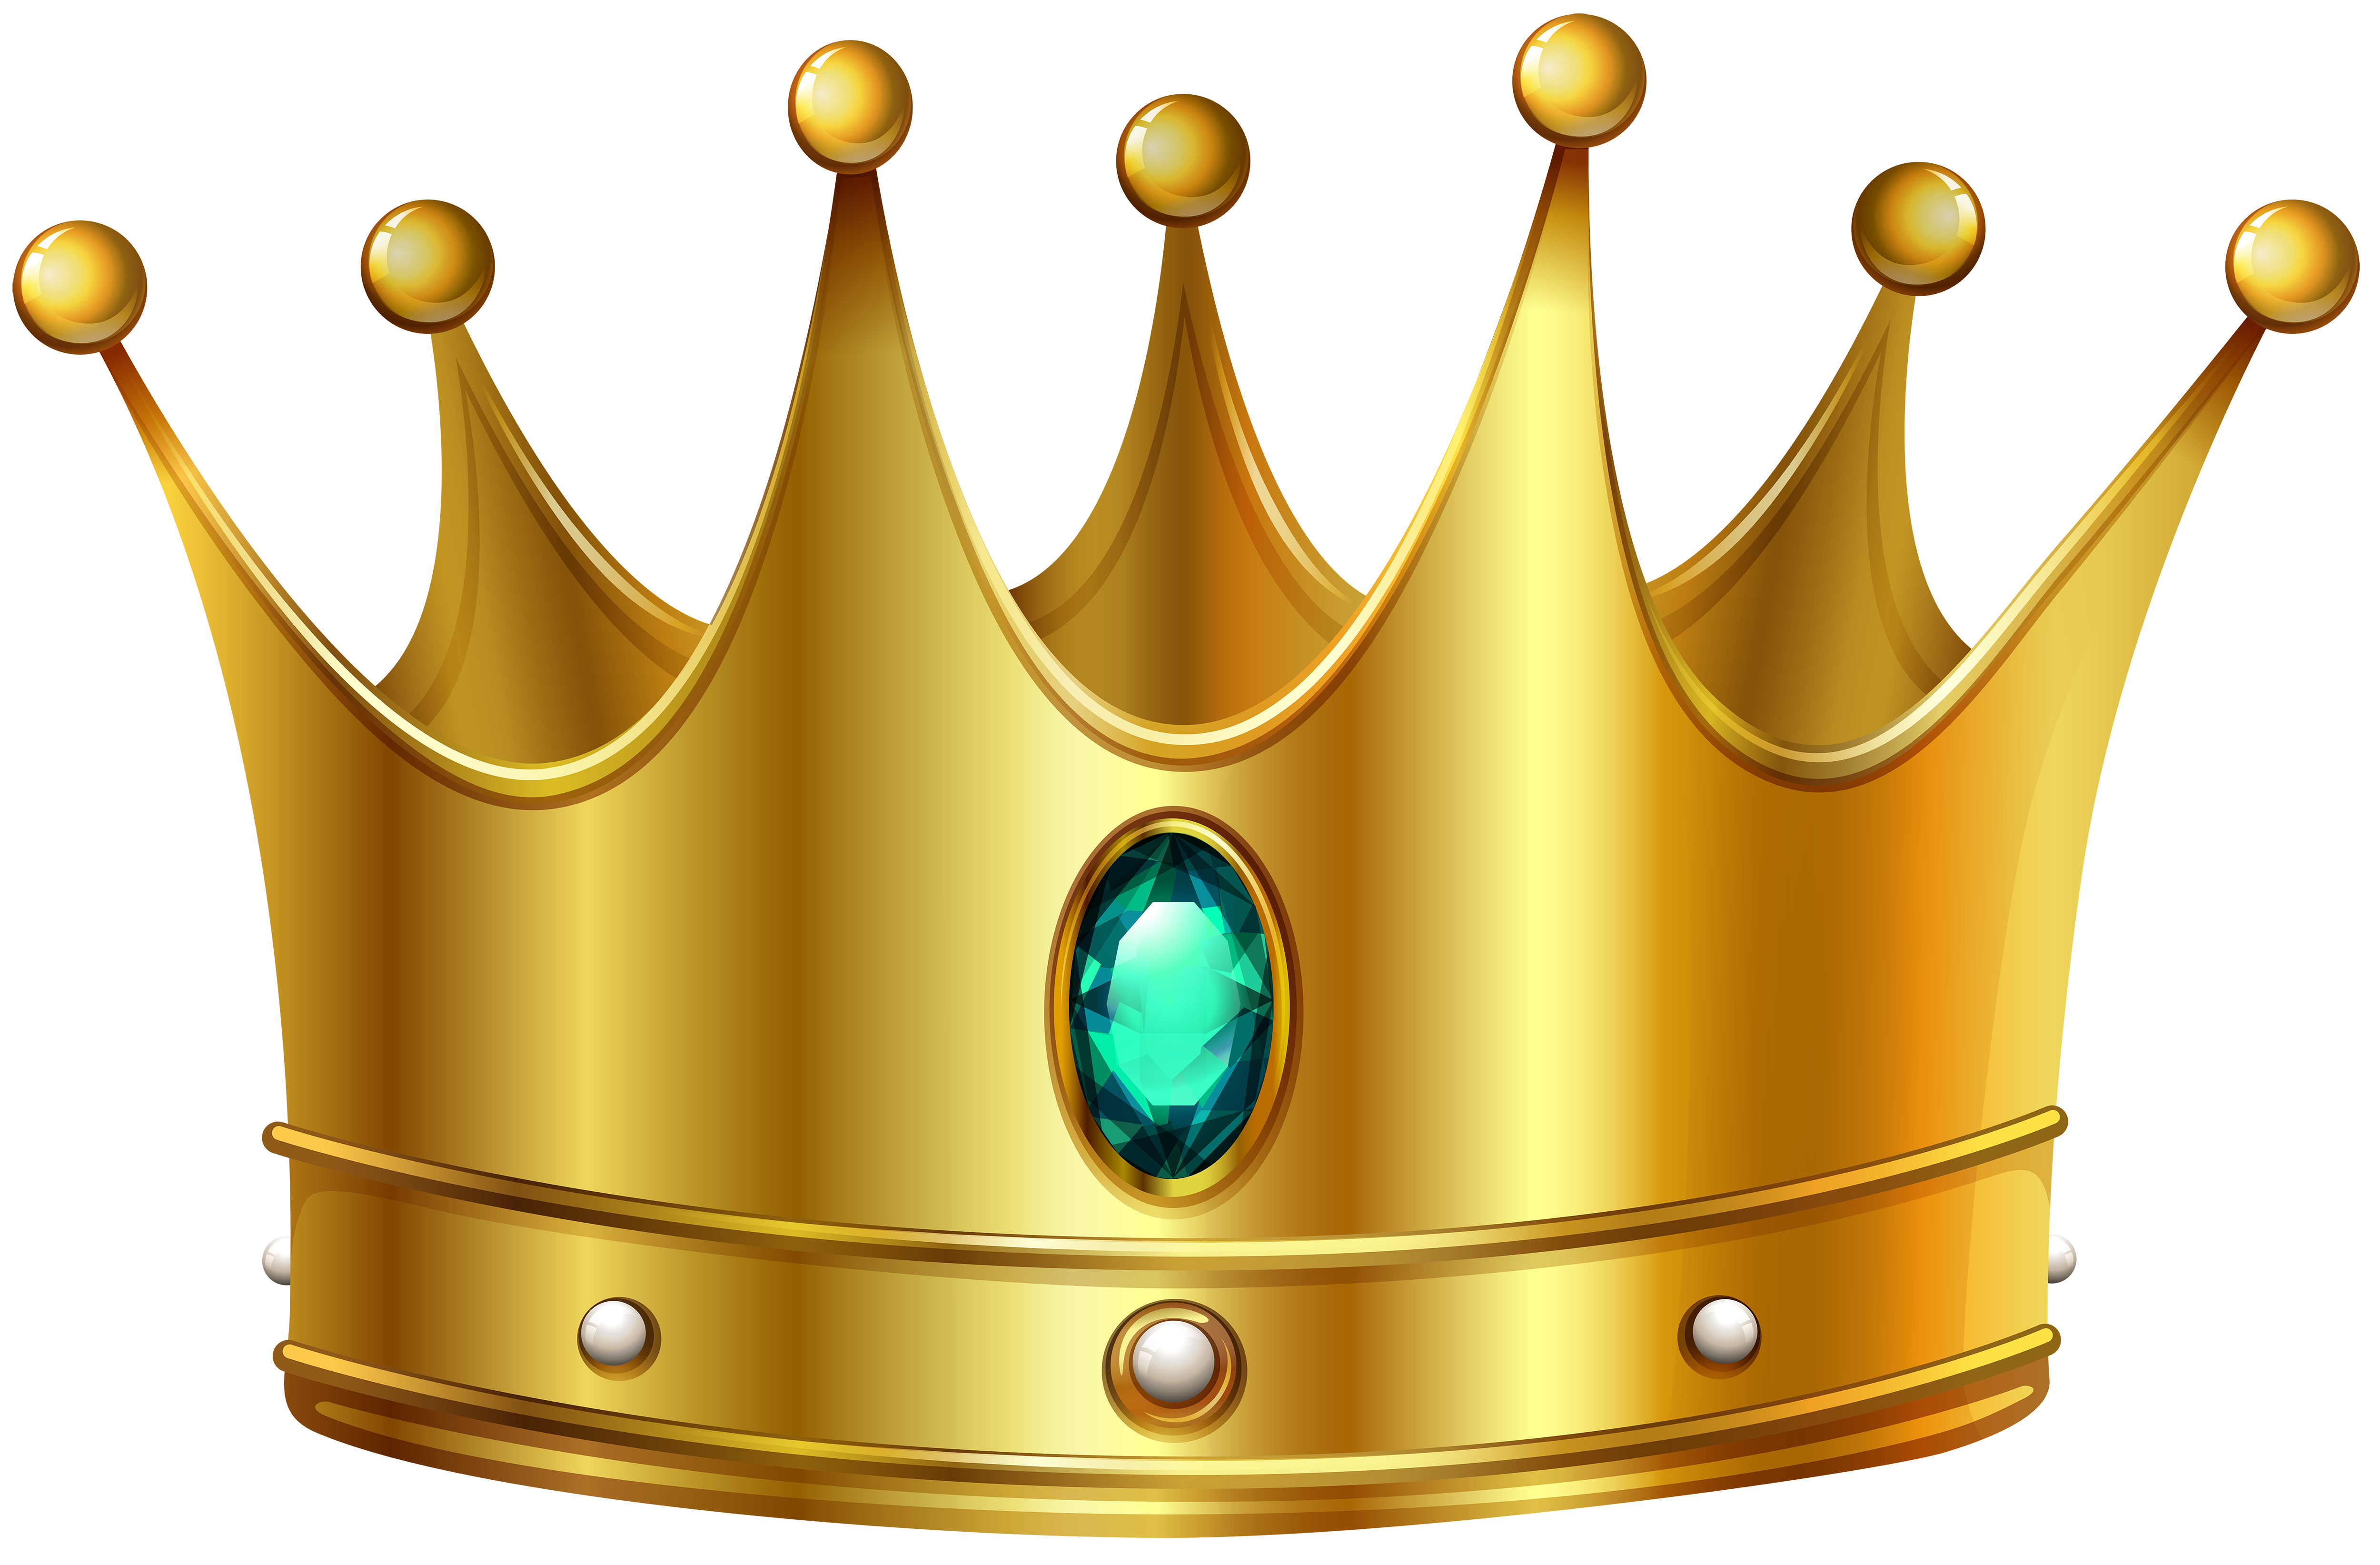 Png . Queen clipart crown king